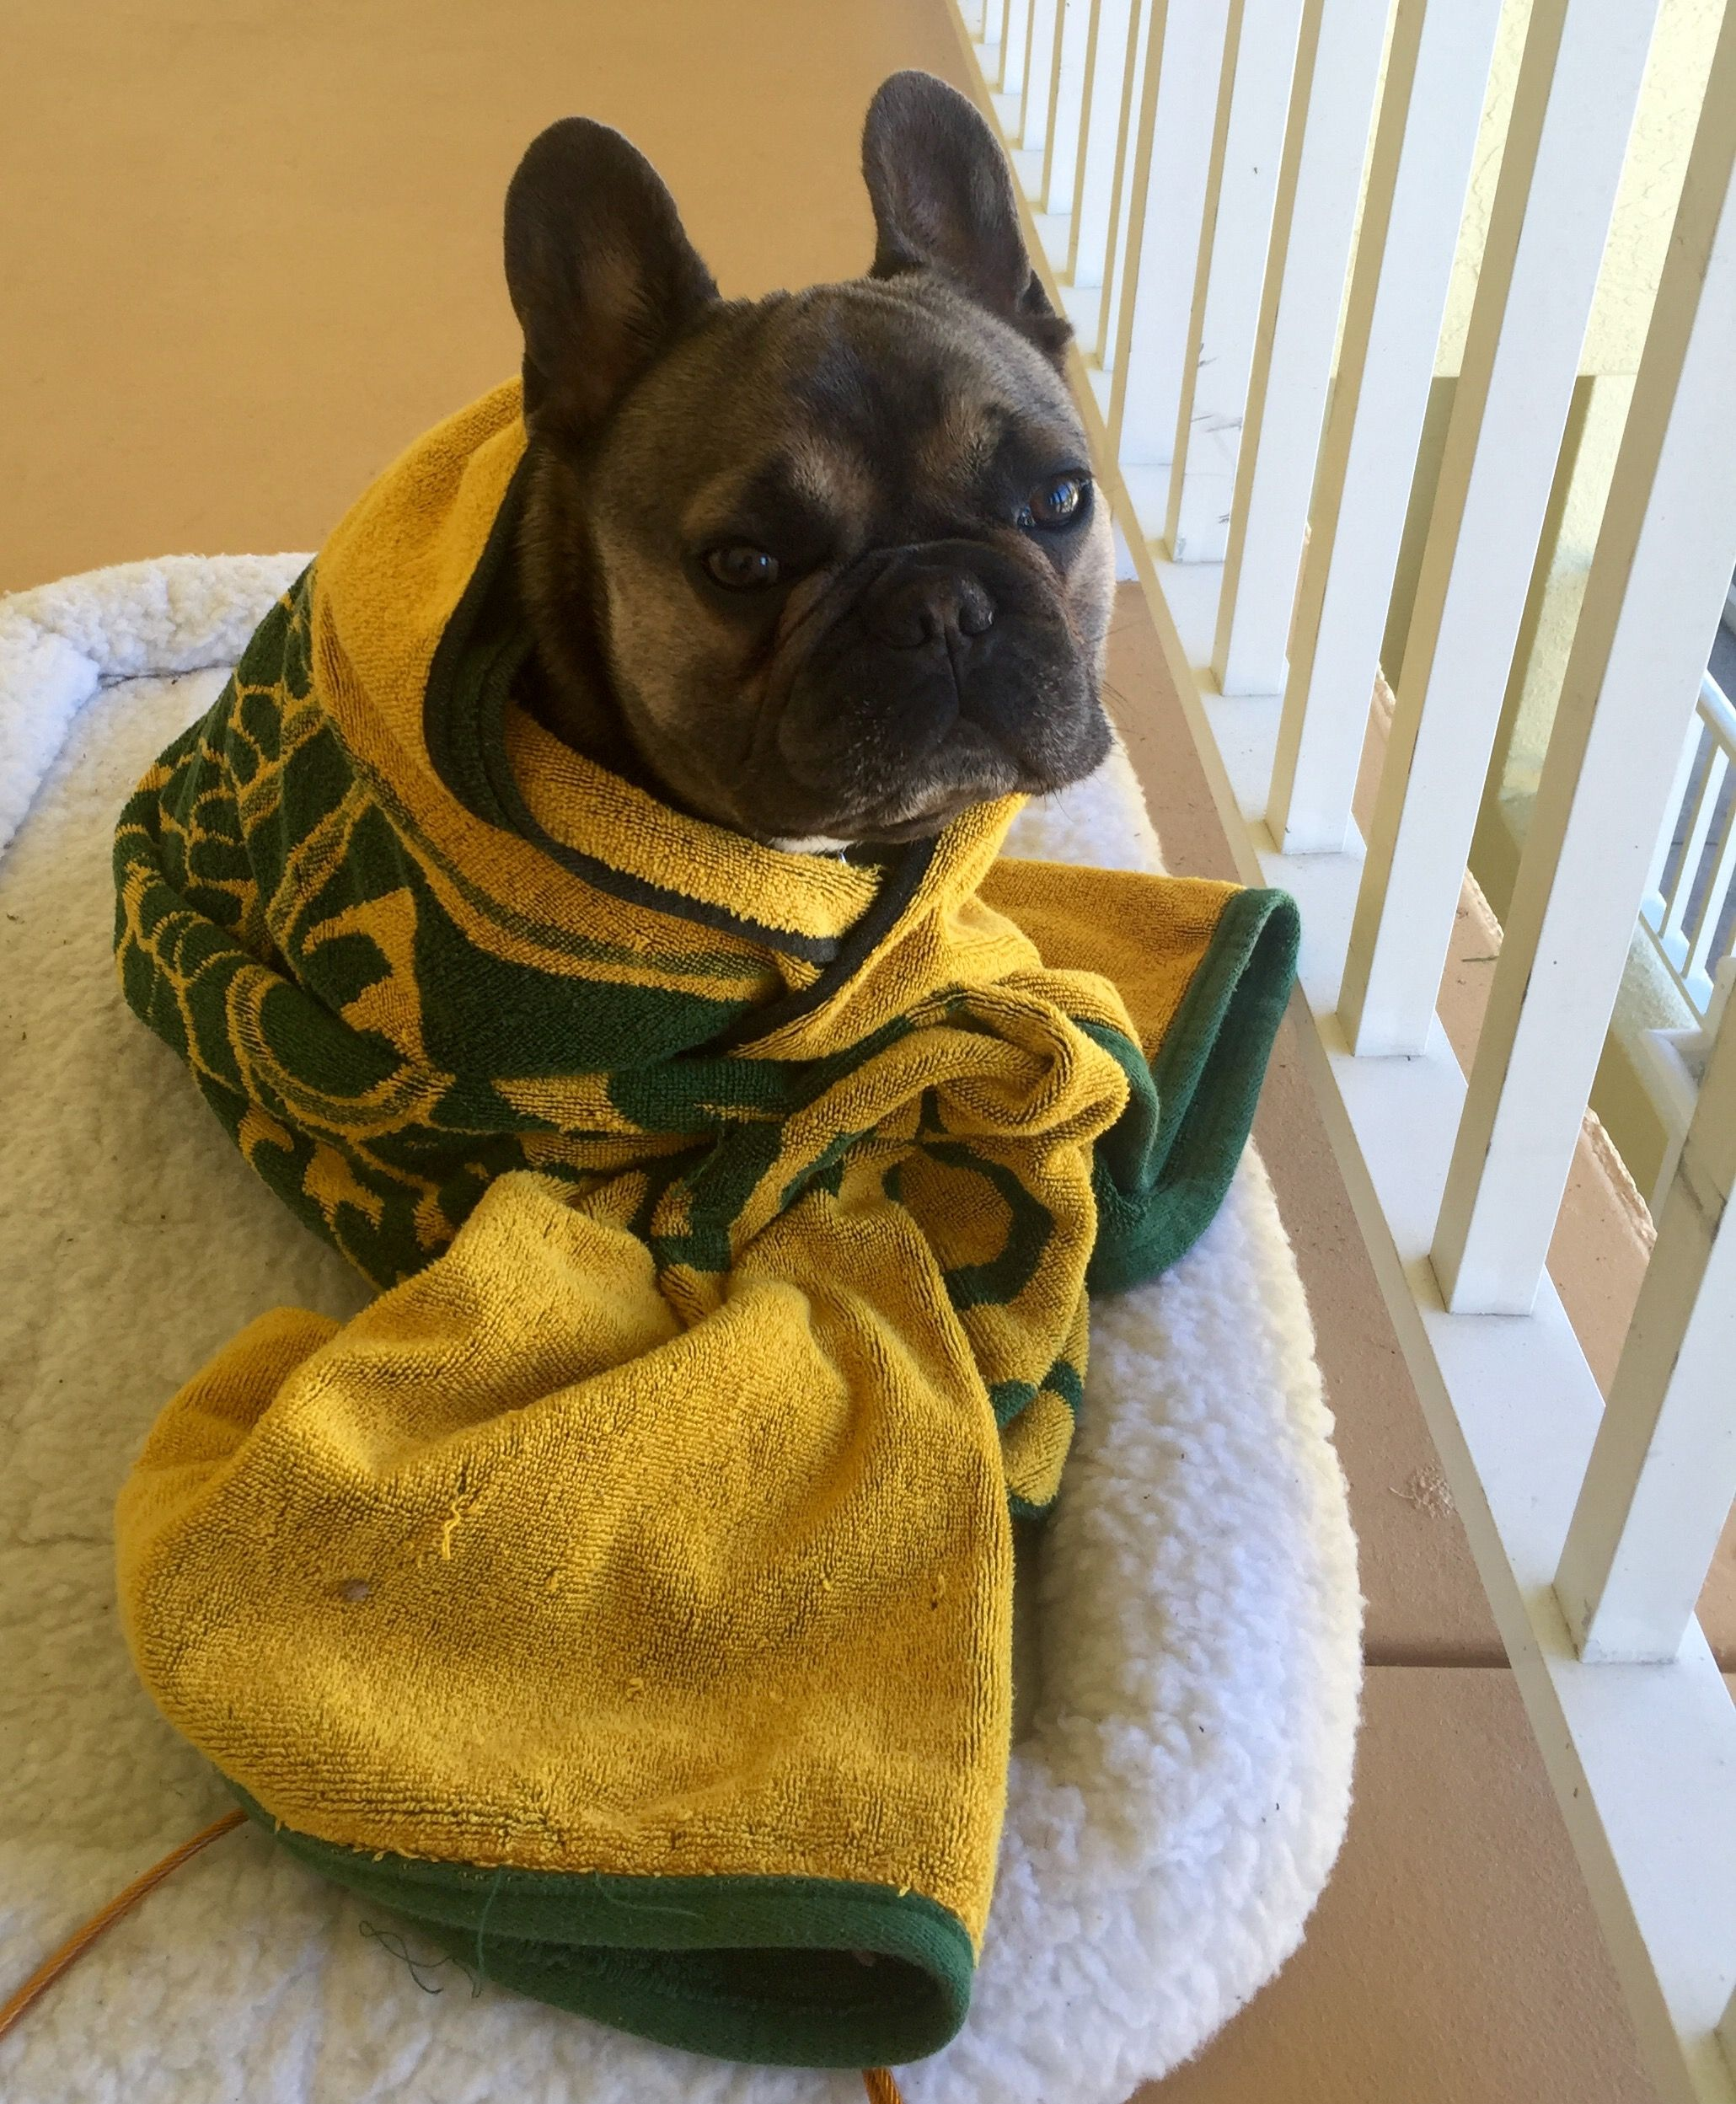 Florida Frenchie in winterplease turn the heat back on!